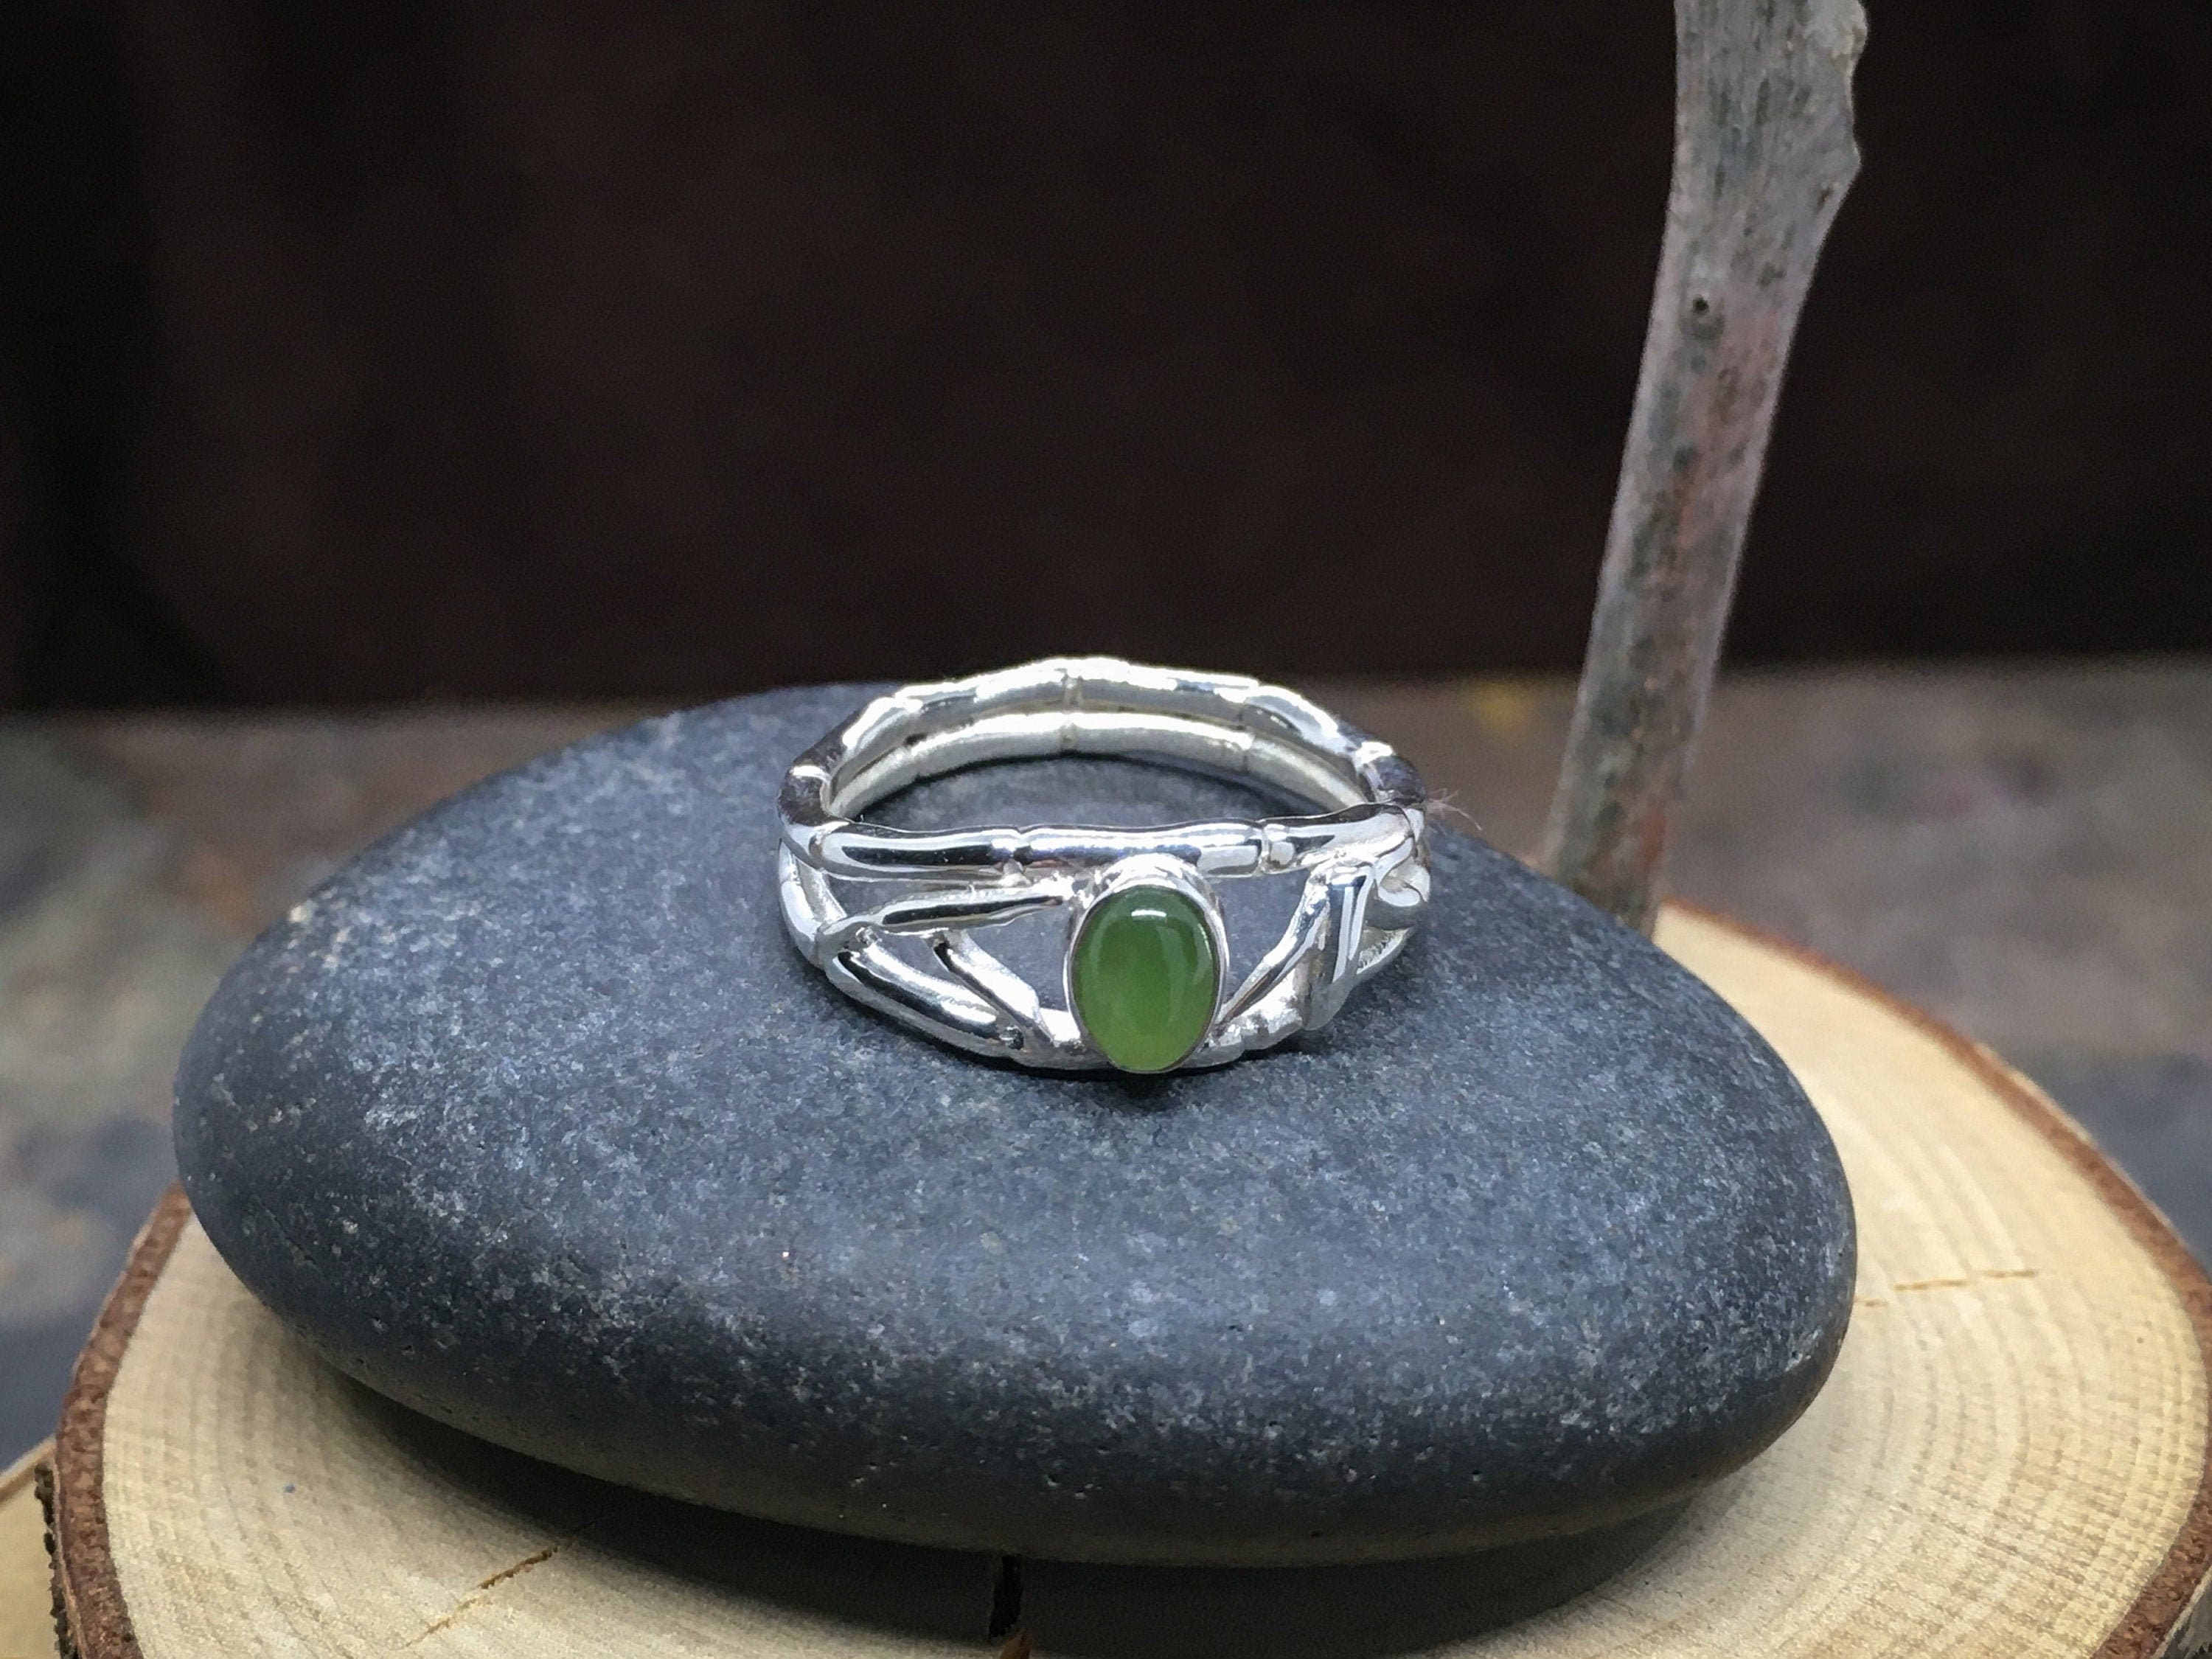 Bamboo Jade Ring in solid Sterling Silver - Wonderful for anniversary gift, gift for her, birthday gift, wife gift or engagement ring!